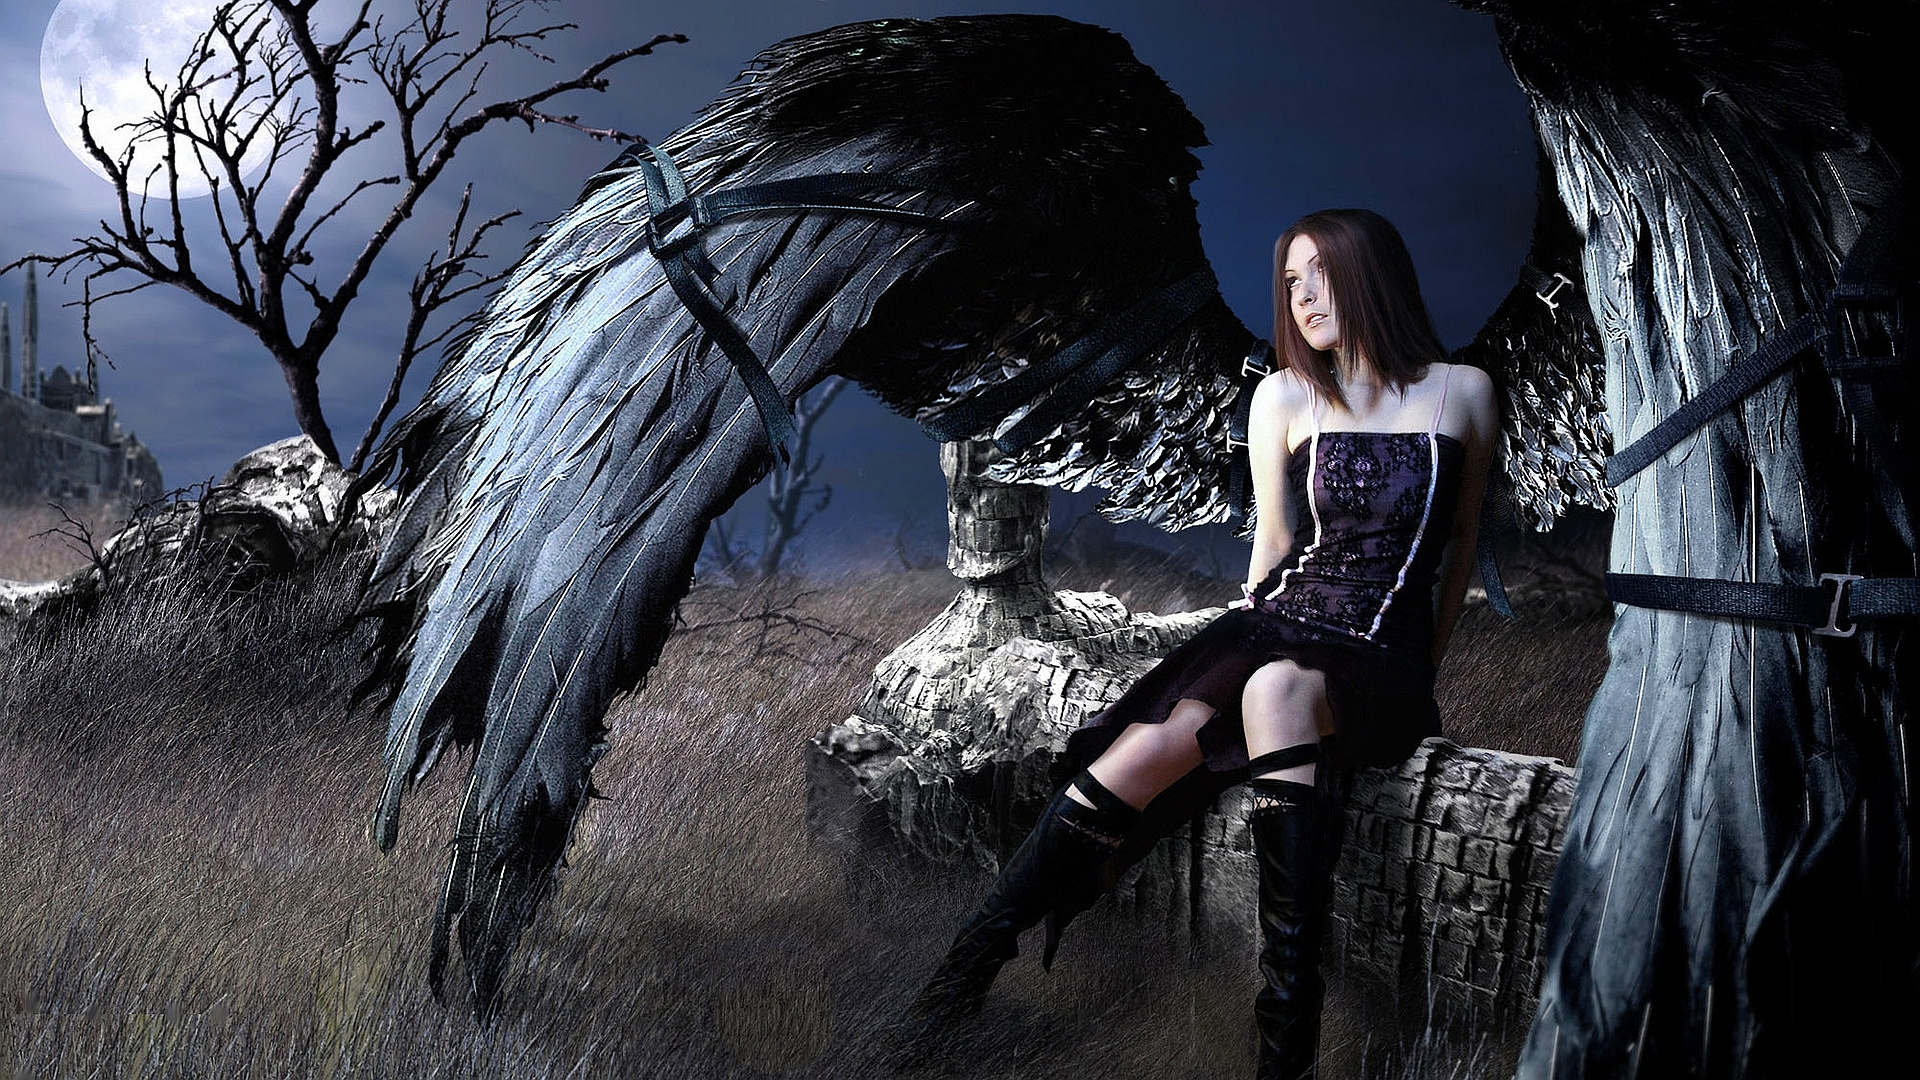 fallen angel Wallpaper Background 28674 1920x1080